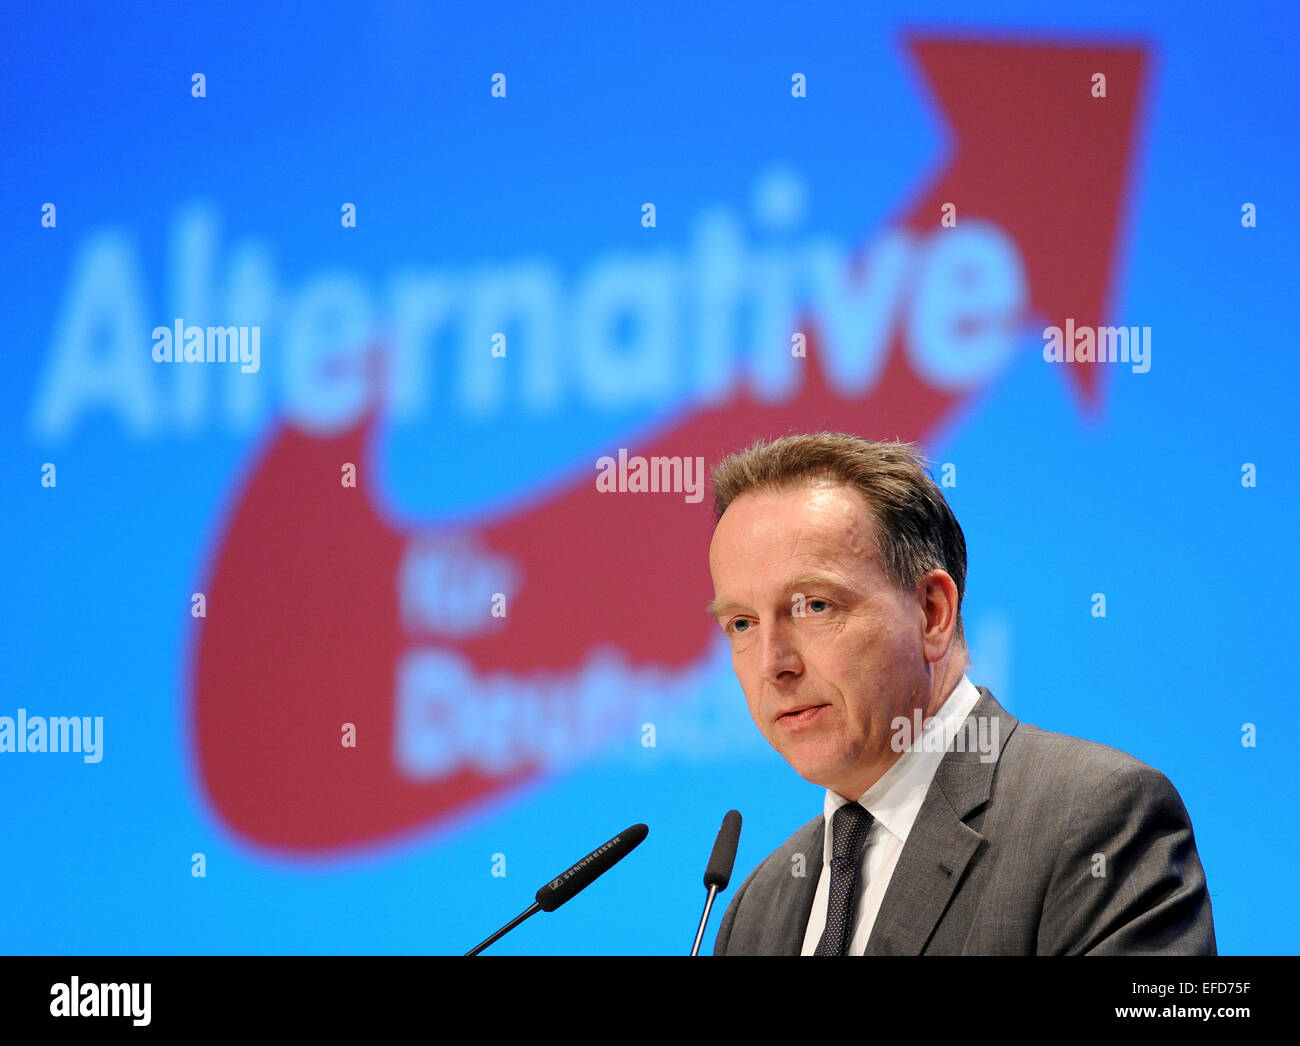 Bremen, Germany. 01st Feb, 2015. Prof. Stefan Homburg of the University of Hanover gives a guest lecture on the topic 'Reform of income taxation' at the 3rd party conference of the Alternative fuer Deutschland (AfD) party in Bremen, Germany, 01 February 2015. The three-day party conference ends in the afternoon. PHOTO: INGO WAGNER/dpa/Alamy Live News Stock Photo